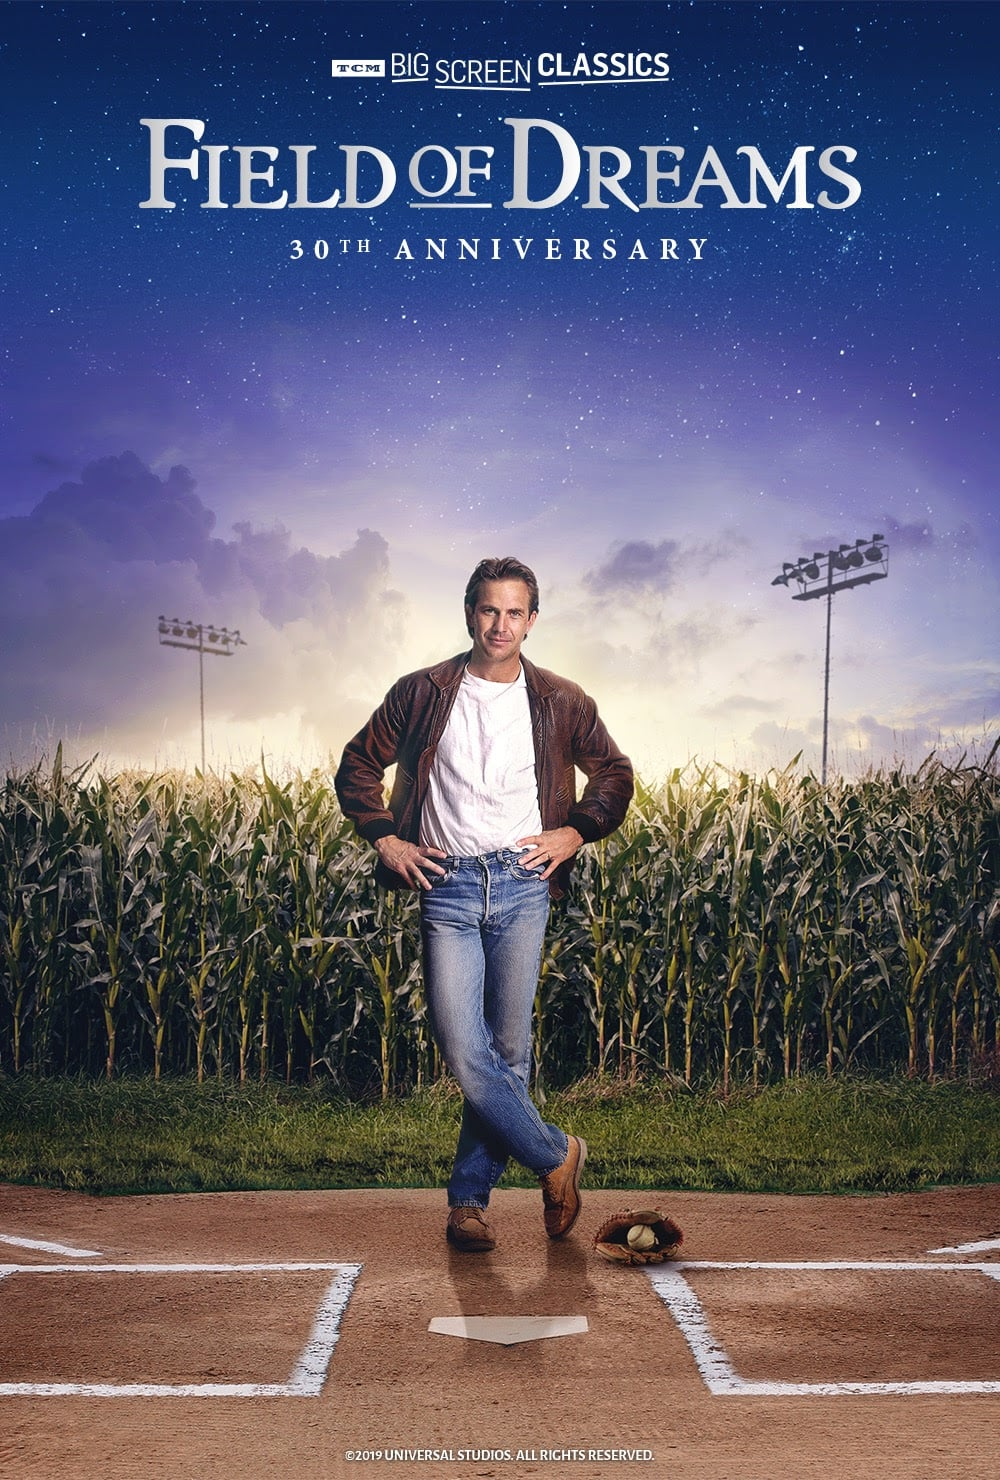 If They Play It, We Will Come — Field of Dreams Will Return to Theaters This Father's Day